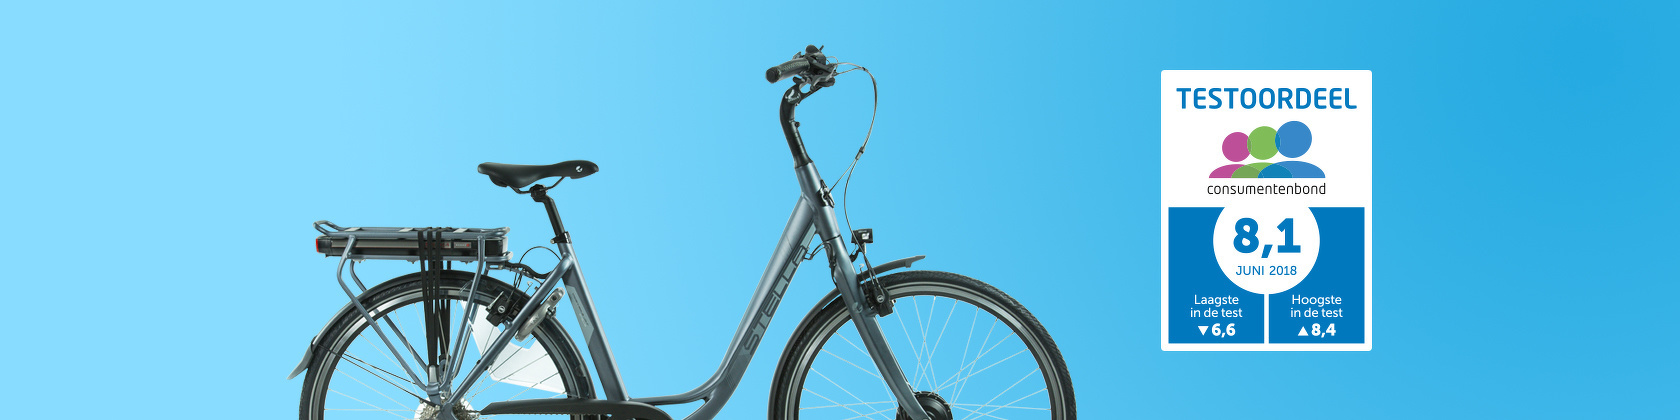 Consumentenbond E-bike Test 2018 - Copenhague Light 'Consumentenbond Aanrader'